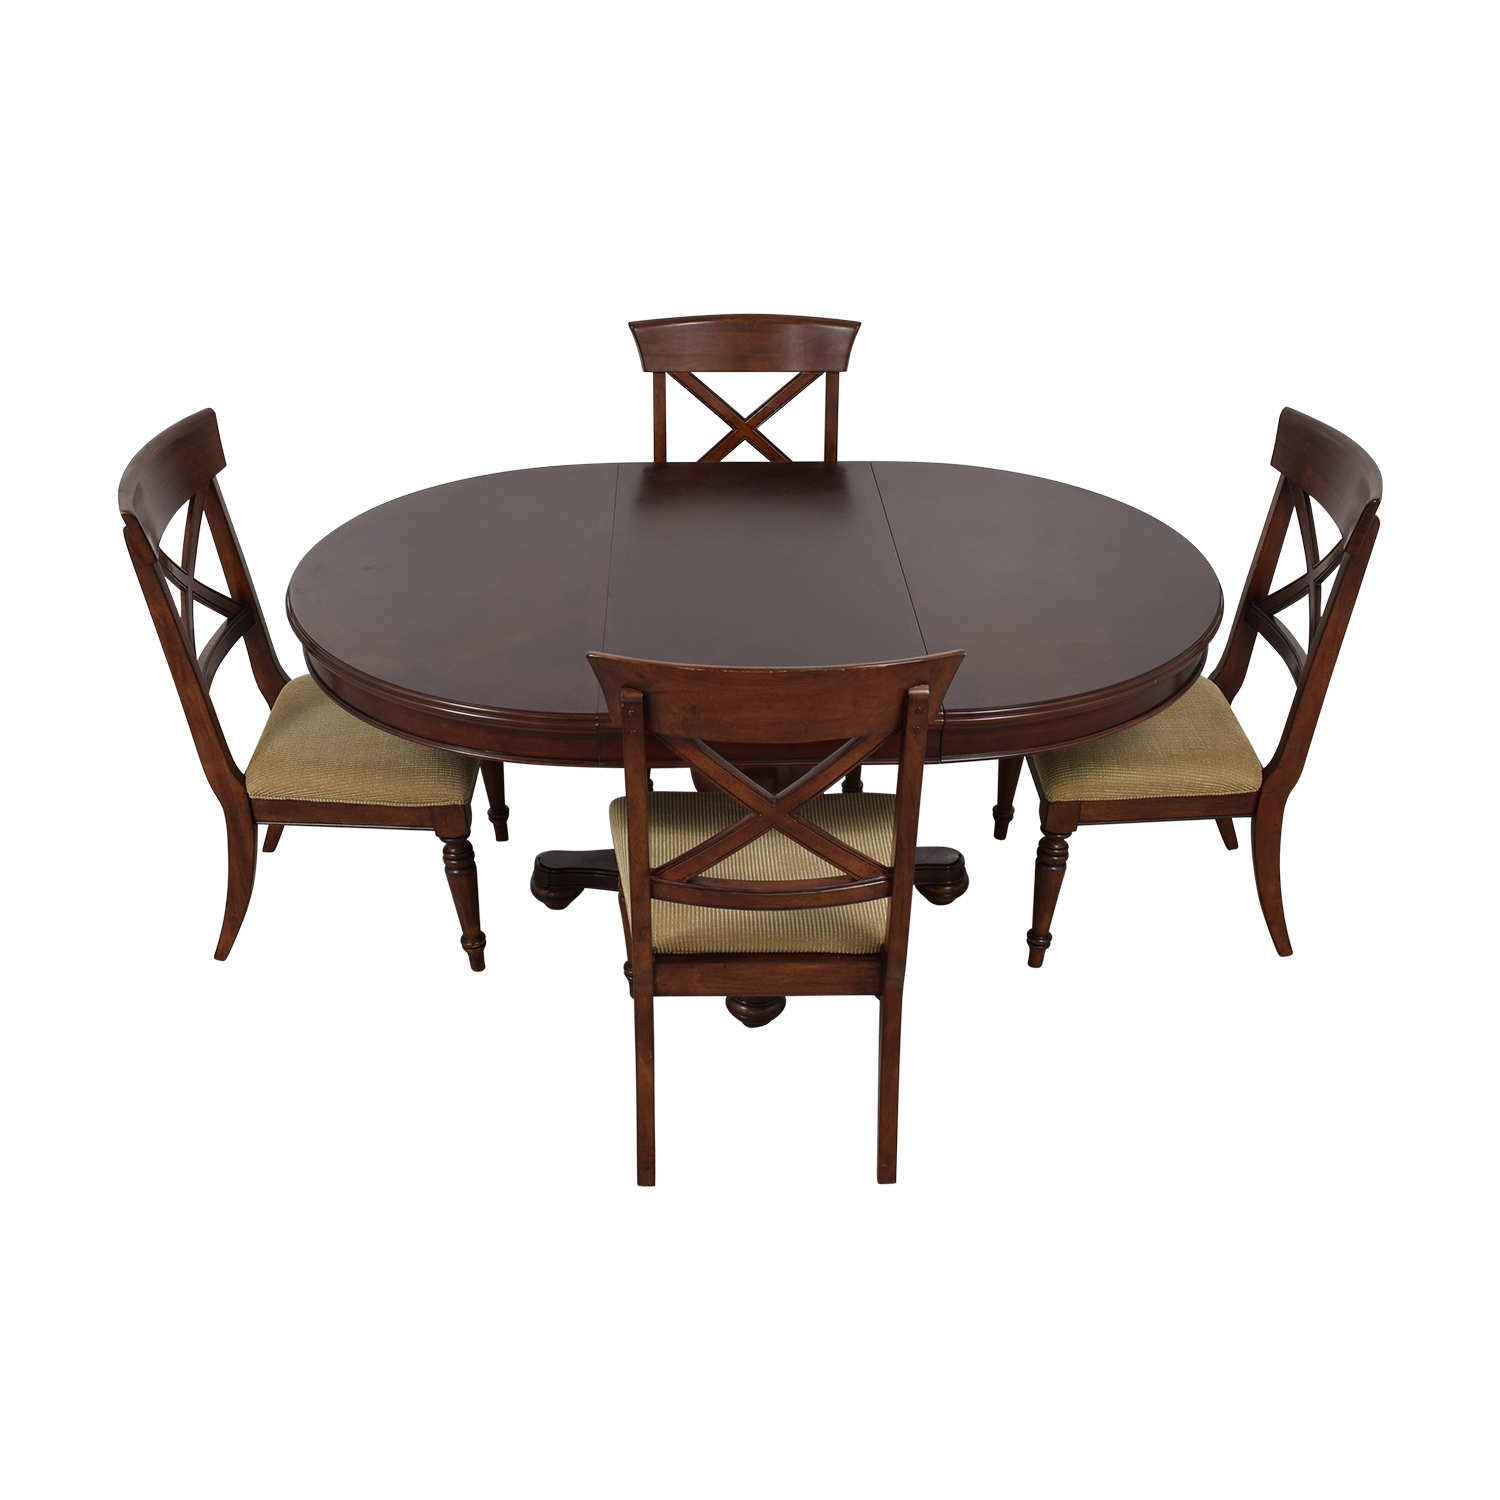 57% OFF - Macy's Macy's Pedestal Round Expandable Dining Set / Tables